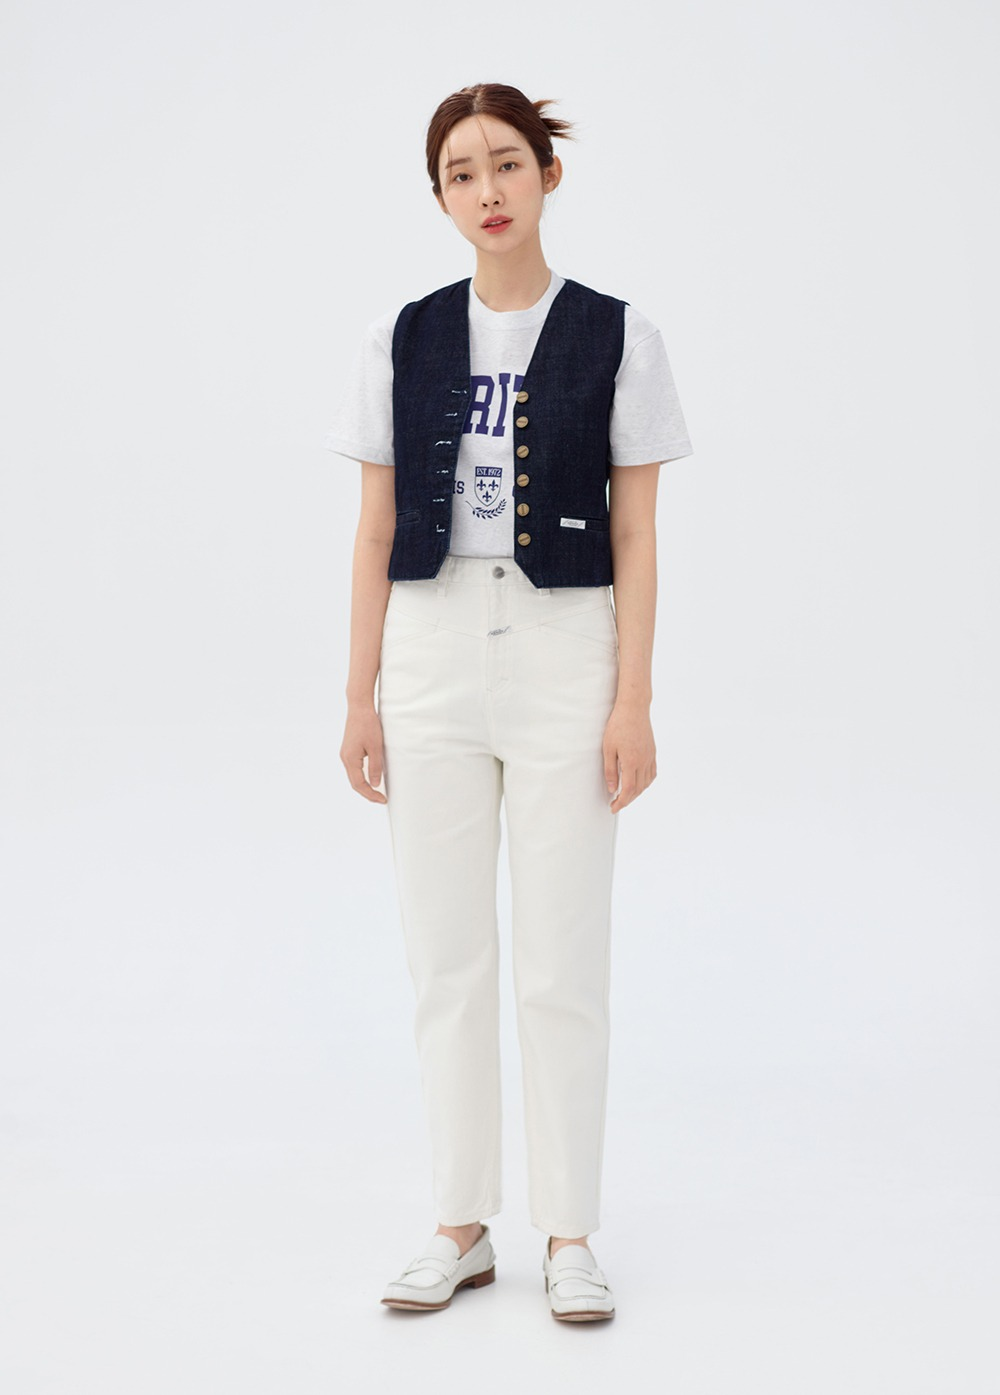 MARITHE X 차정원 W PEDAL PUSHER CROP DENIM off white